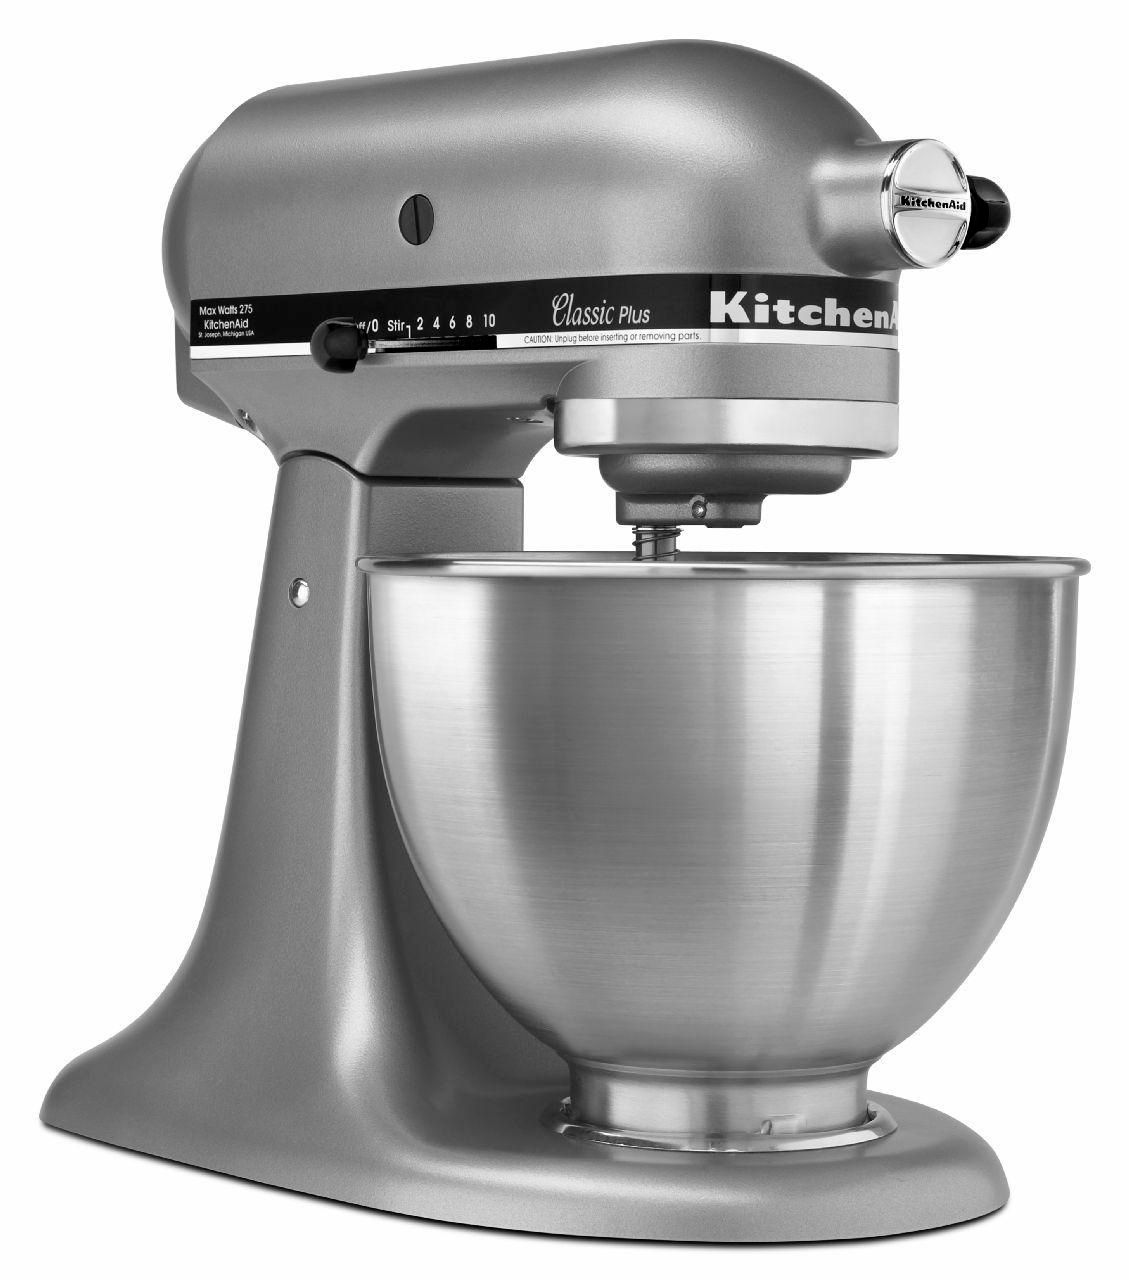 Kitchenaid Batteur Sur Socle Batteur Sur Socle Classic Plus Ksm75sl De Kitchenaid De 275 W